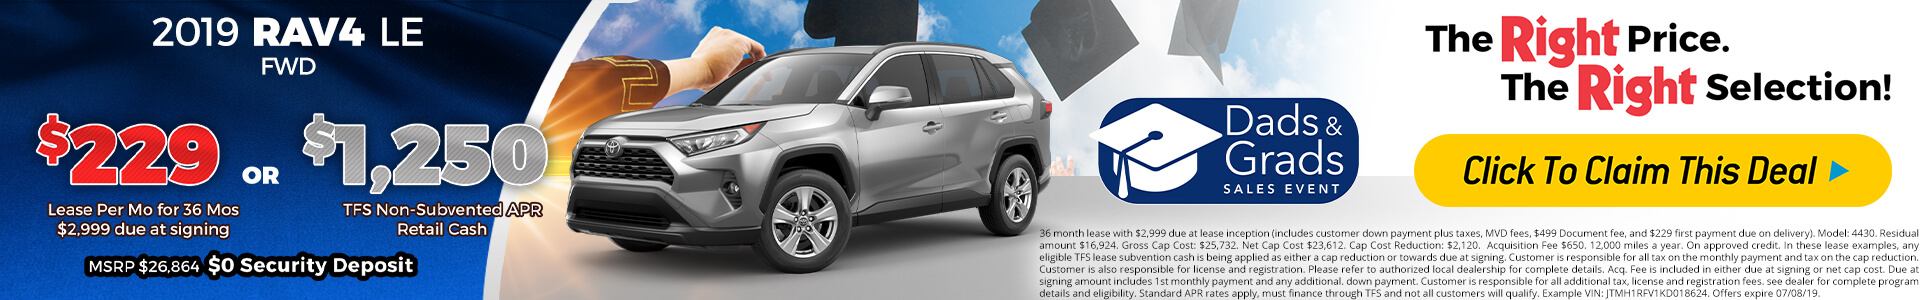 Rav4 - Lease for $229